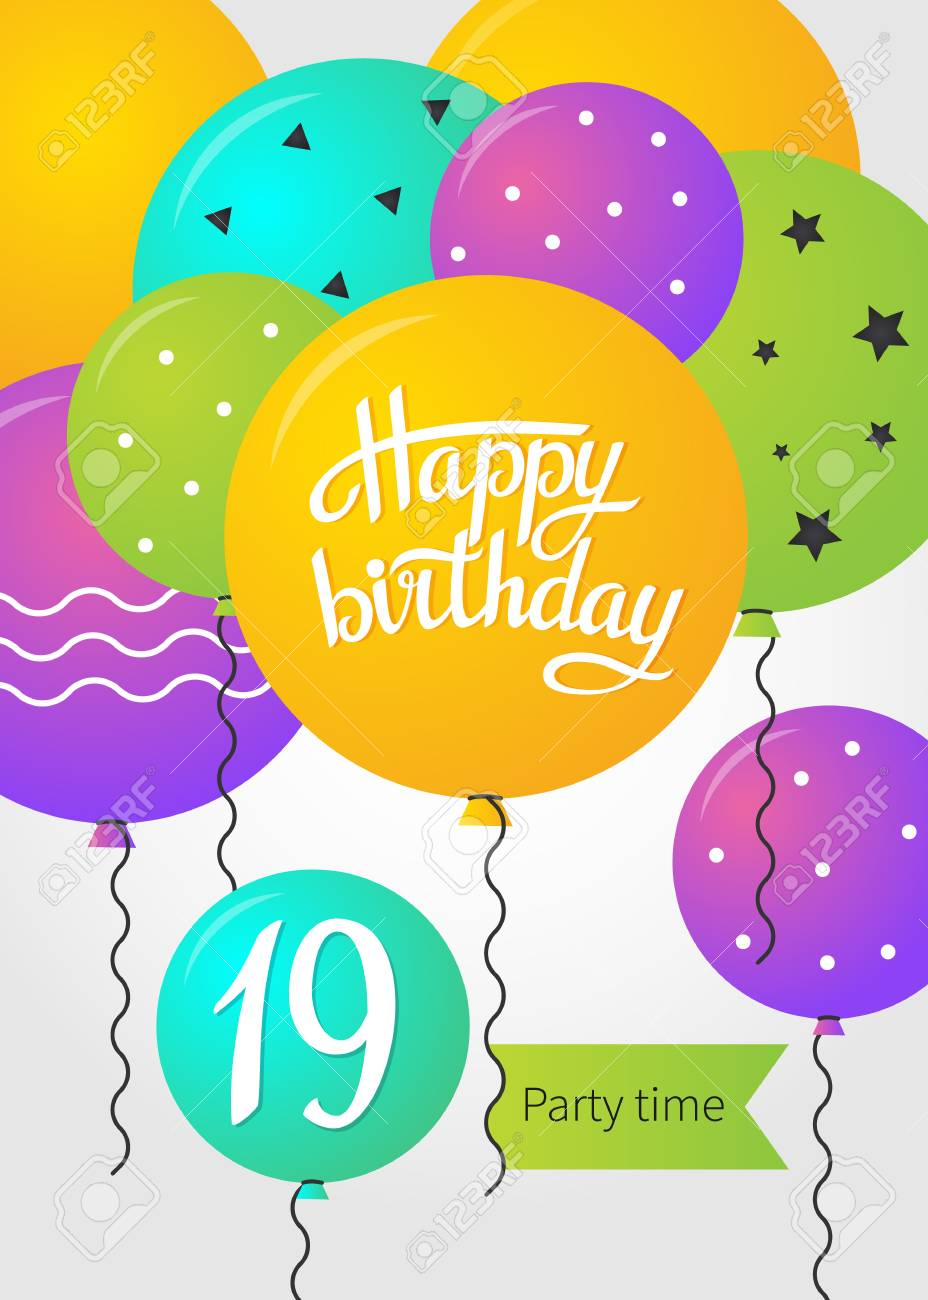 Happy Birthday Card Template With Balloons 19 Years Vector Illustration Stock